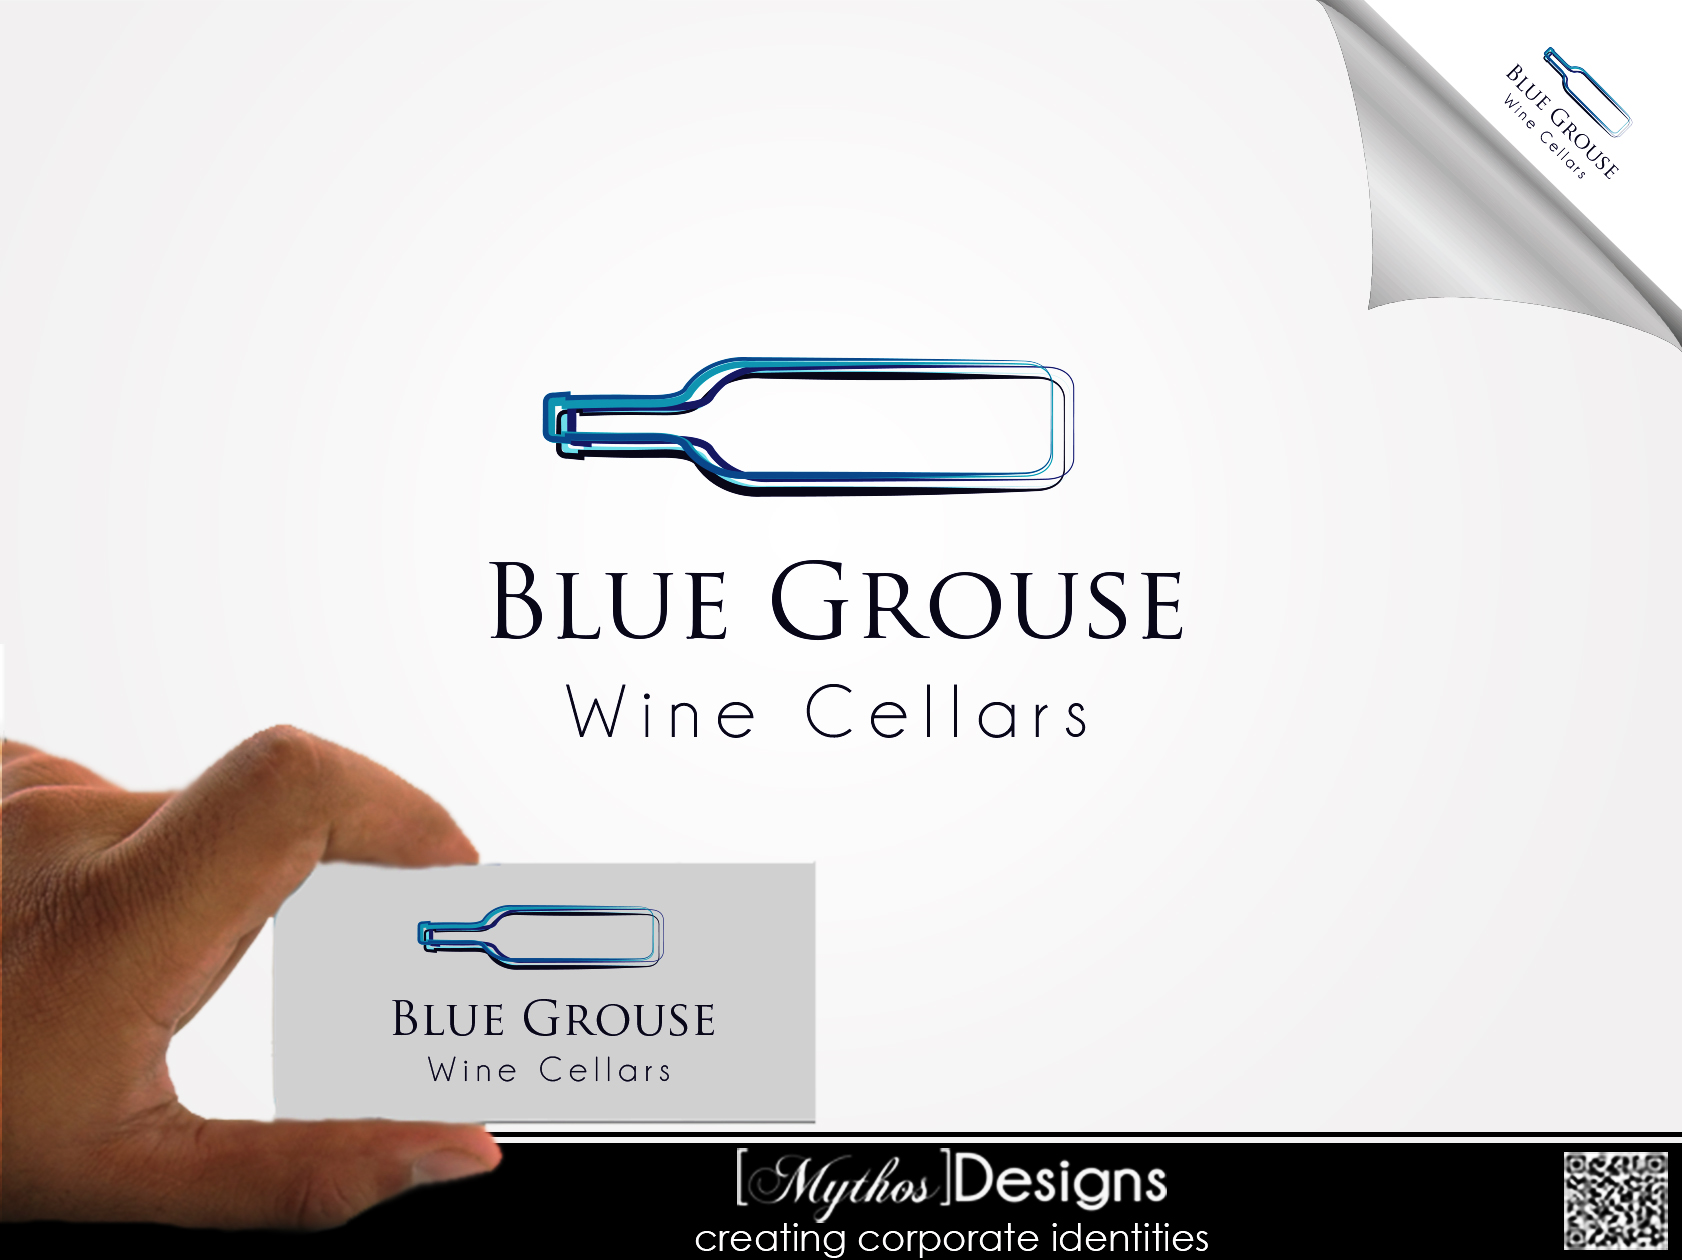 Logo Design by Mythos Designs - Entry No. 29 in the Logo Design Contest Creative Logo Design for Blue Grouse Wine Cellars.